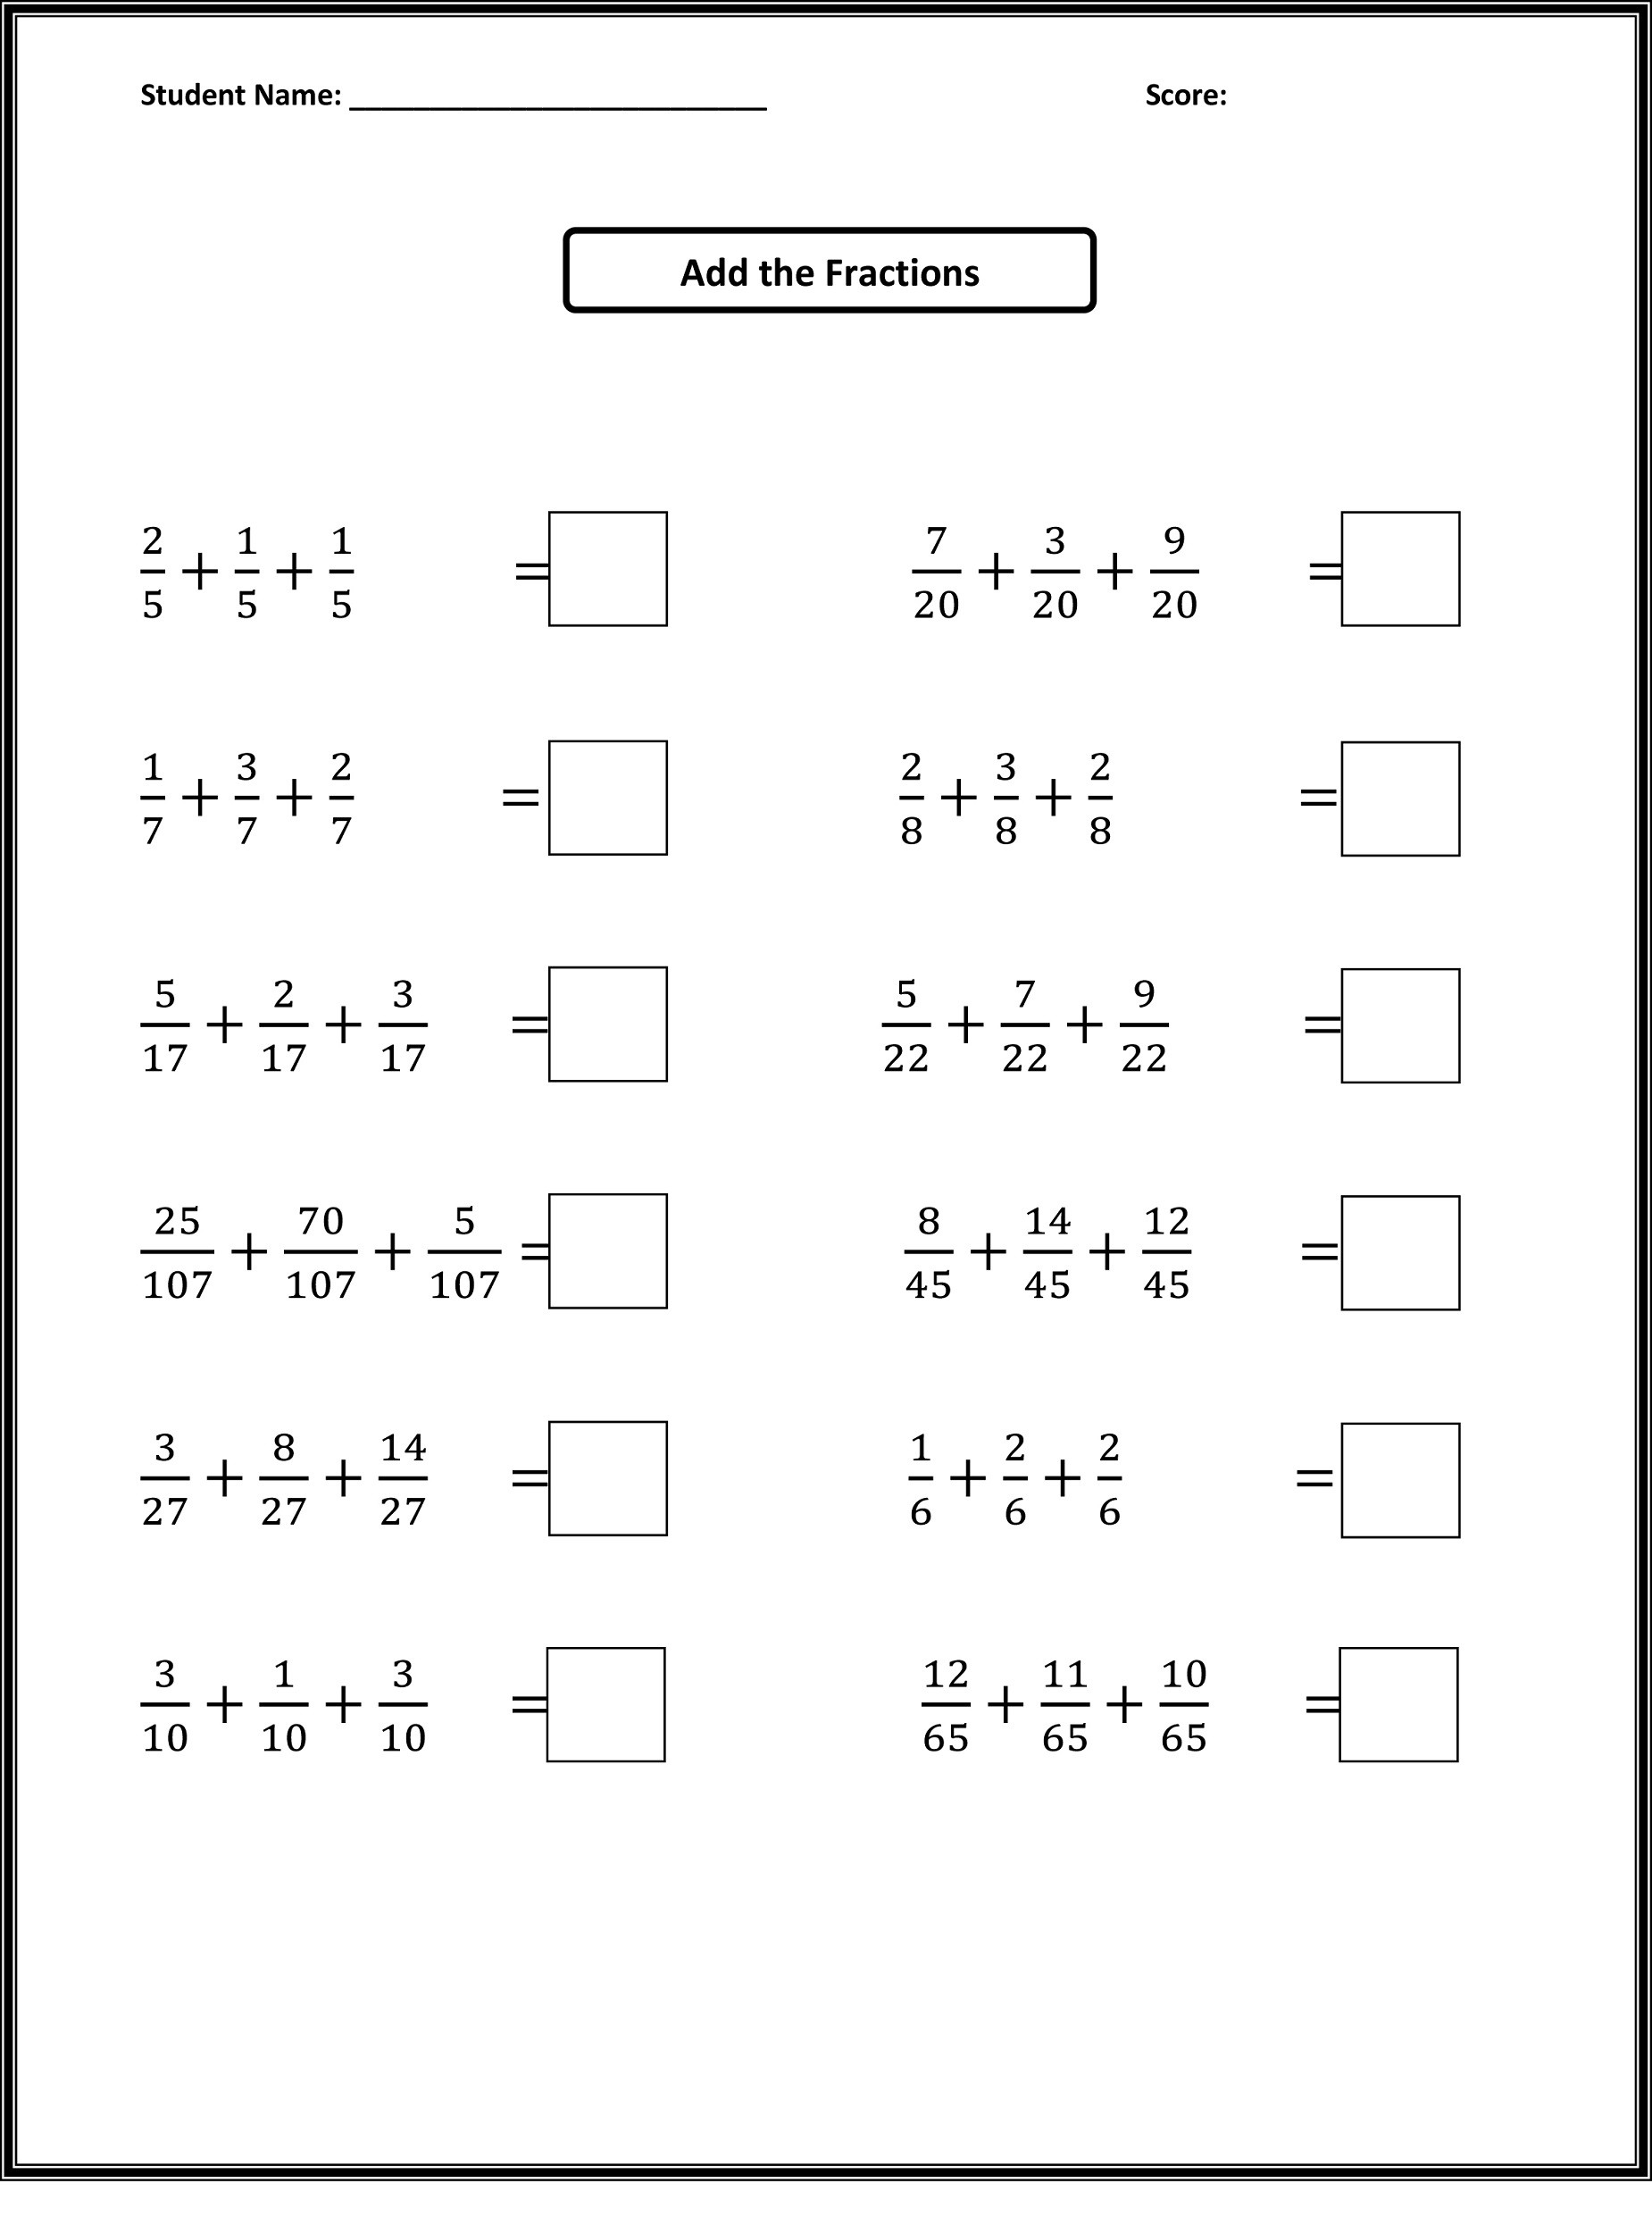 2nd Grade Fractions Worksheets Math Worksheet Free Elementary Mathorksheets 2nd Grade